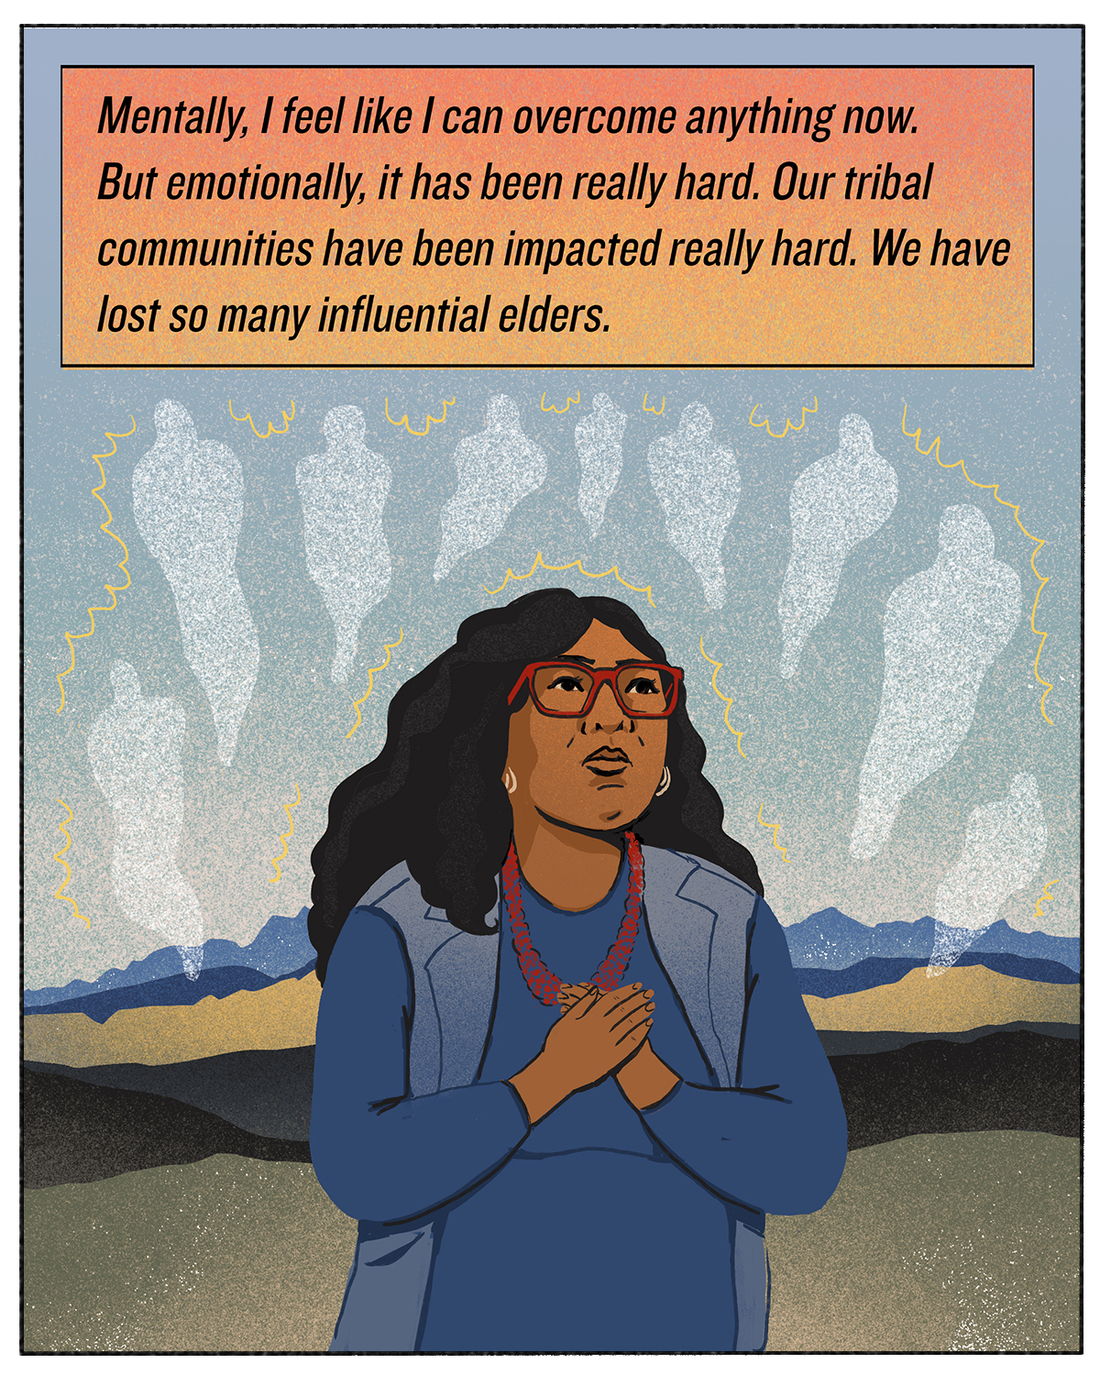 Mentally, I feel like I can overcome anything now. But emotionally, it has been really hard. Our tribal communities have been impacted really hard. We have lost so many influential elders.